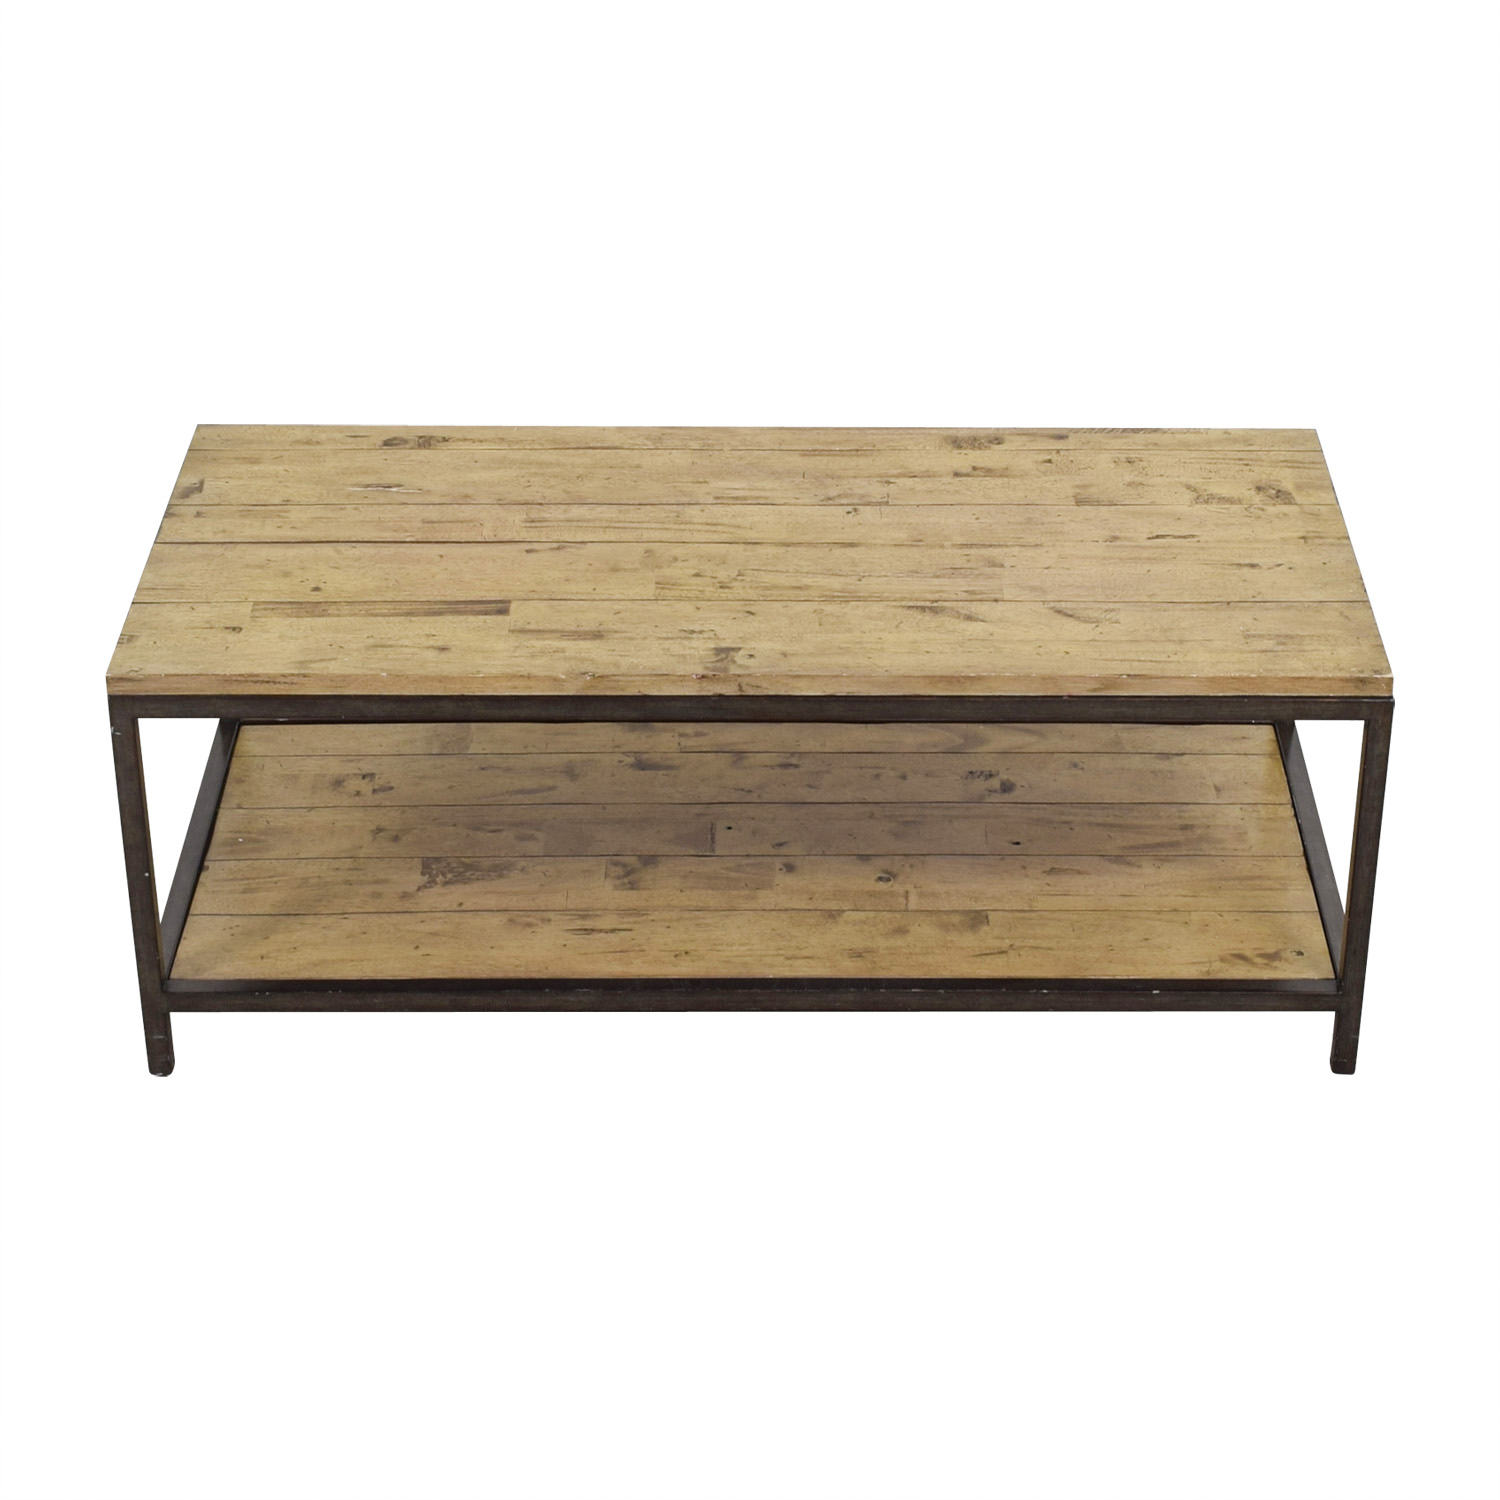 shop Ballard Designs Rustic Durham Coffee Table Ballards Design Tables